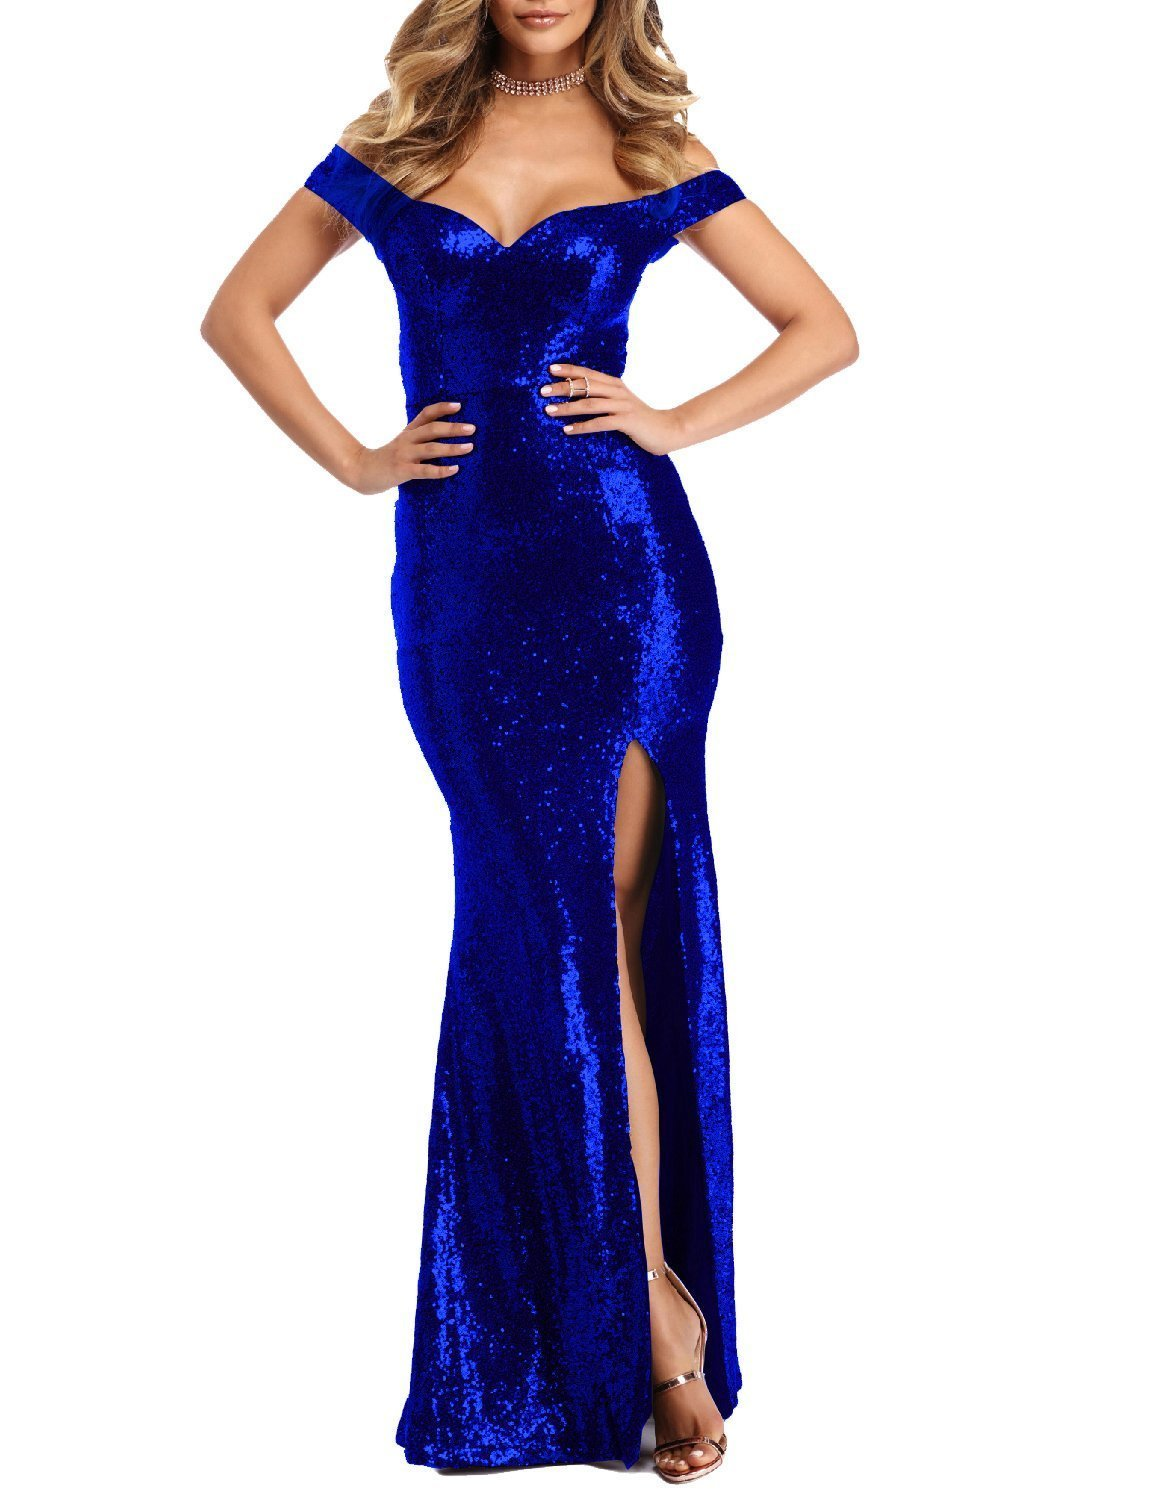 Women's Sexy 2018 Off Shoulder Prom Gowns Sequin Mermaid Evening Party Dresses